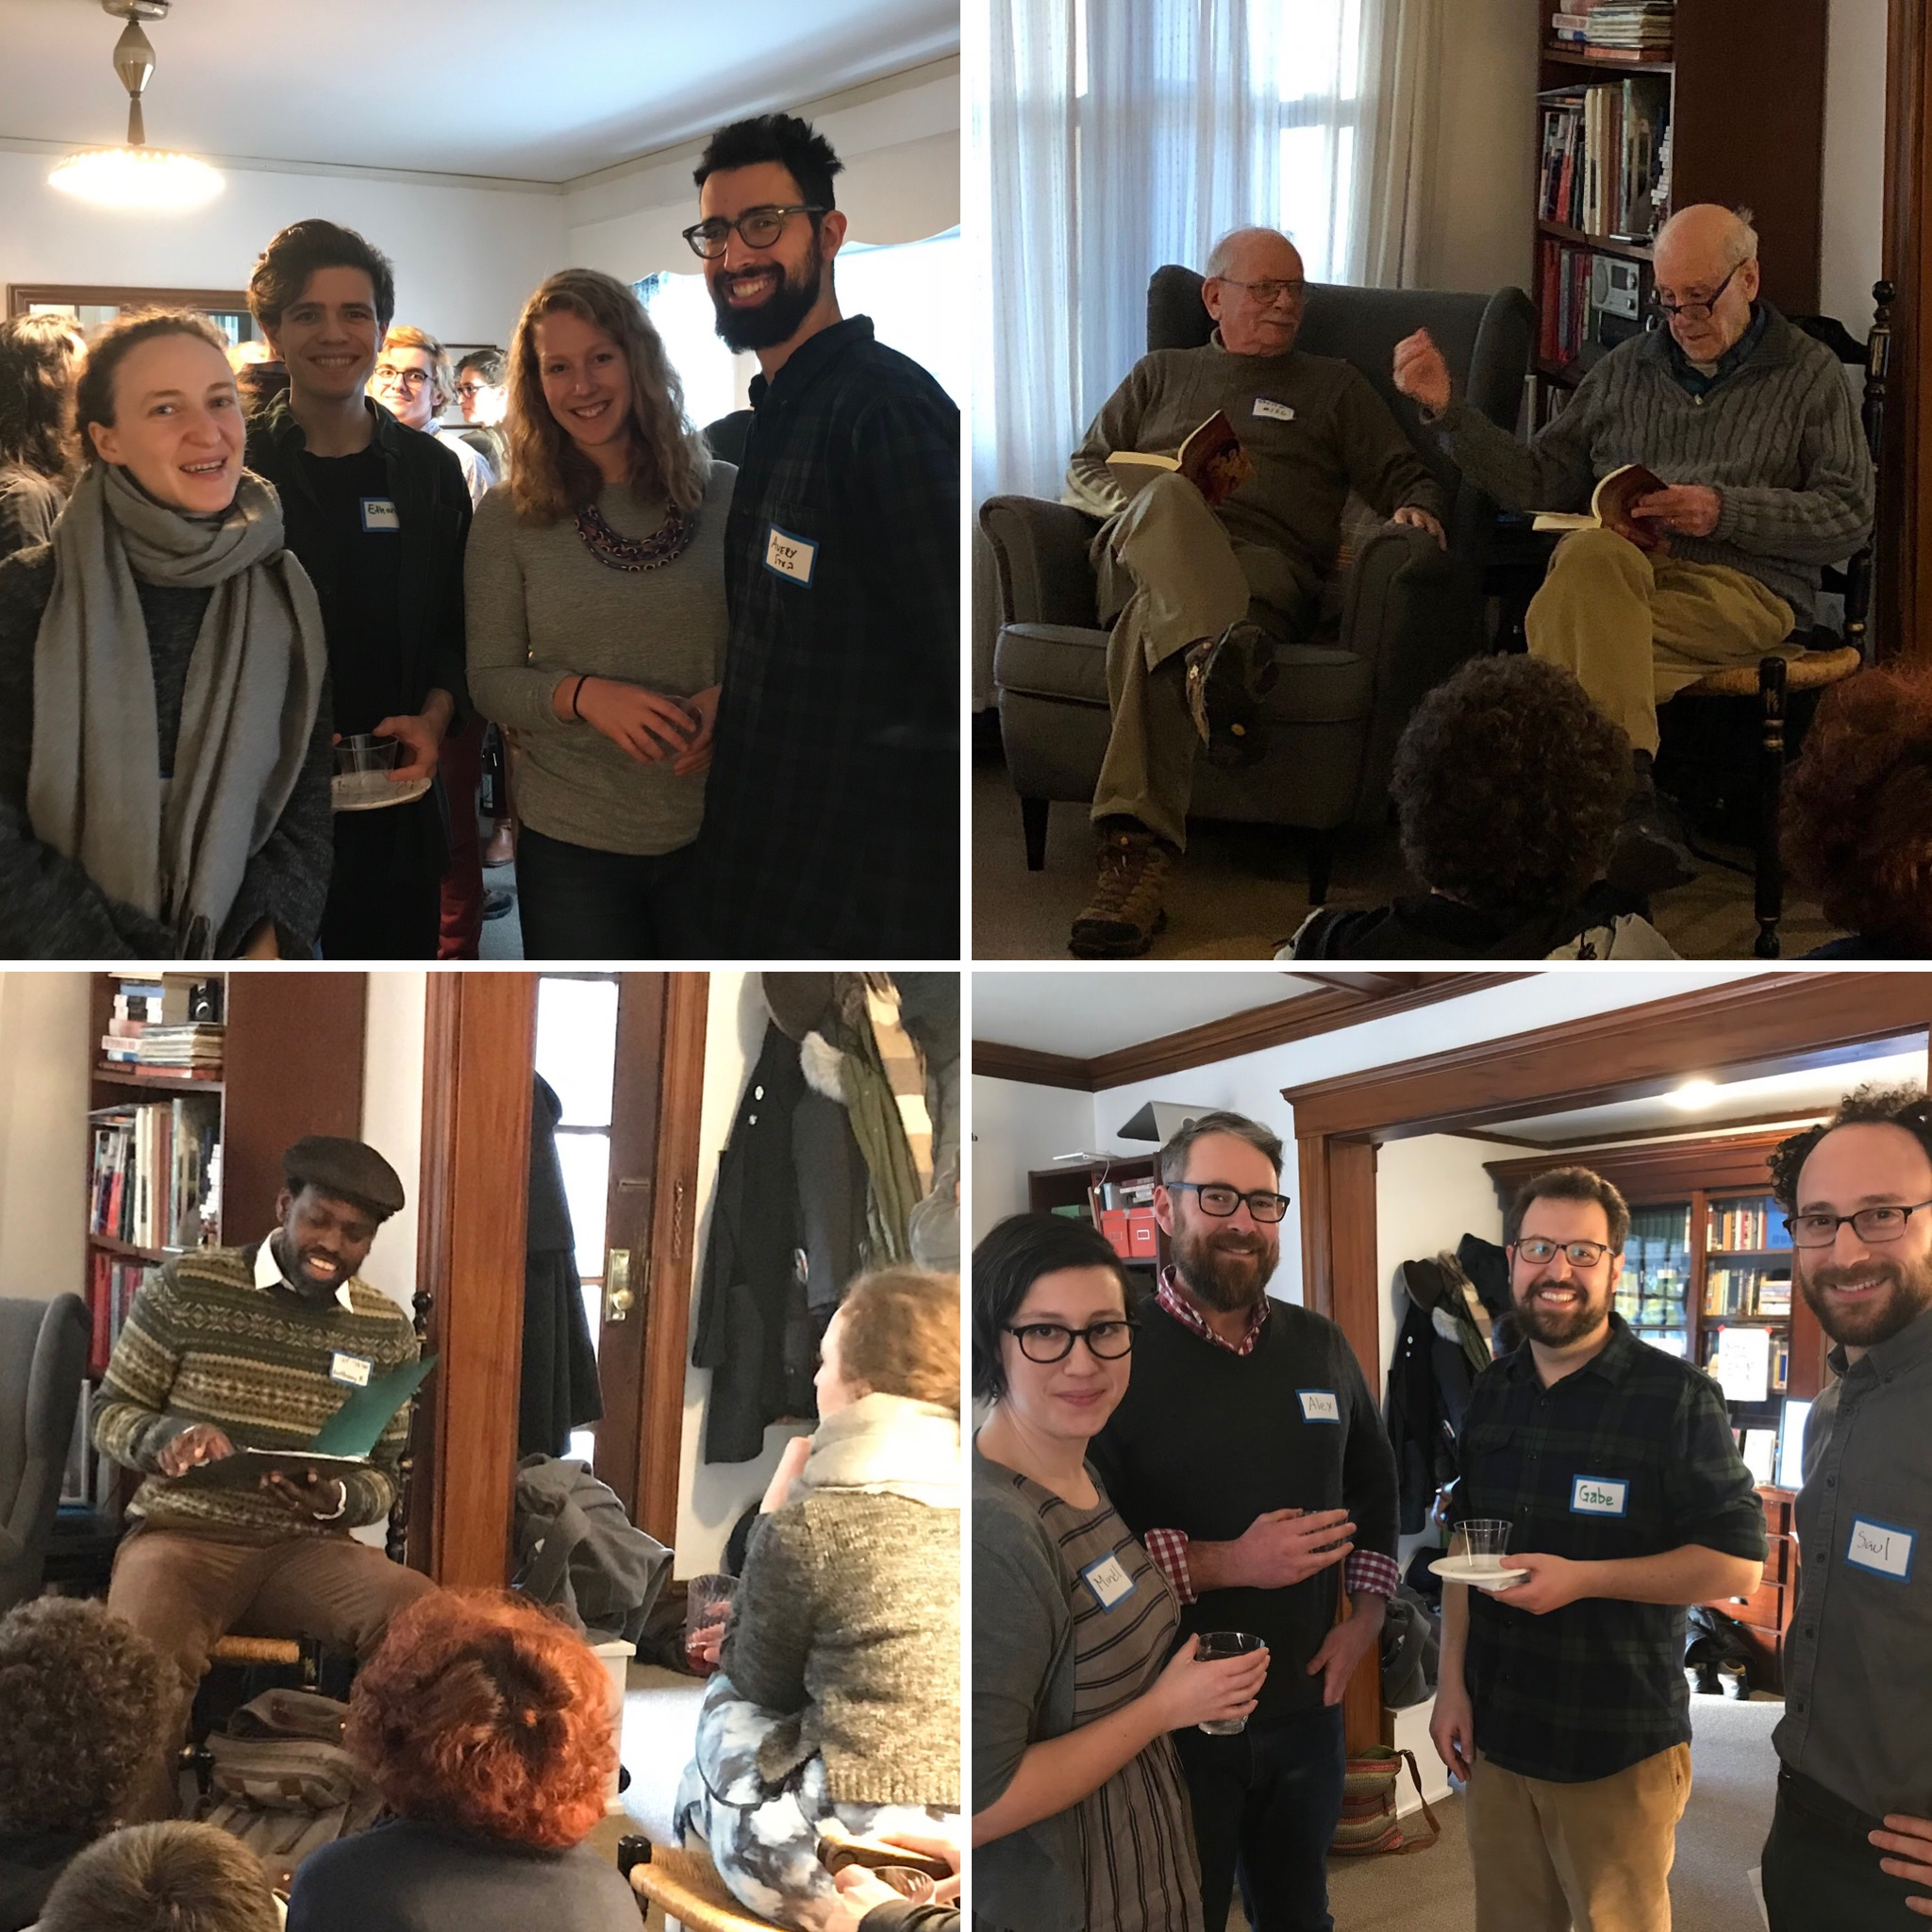 <p>Spotted at our Belmont party, clockwise from top left: two mavens of Yiddish song, Reyna Schaechter and Leah Reis-Dennis; Solon Beinfeld and Richard J. Fein read Sutzkever; editors Madeleine Cohen and Saul Zaritt work on their shmooze; and Anthony Russell performs songs from his new album. </p>